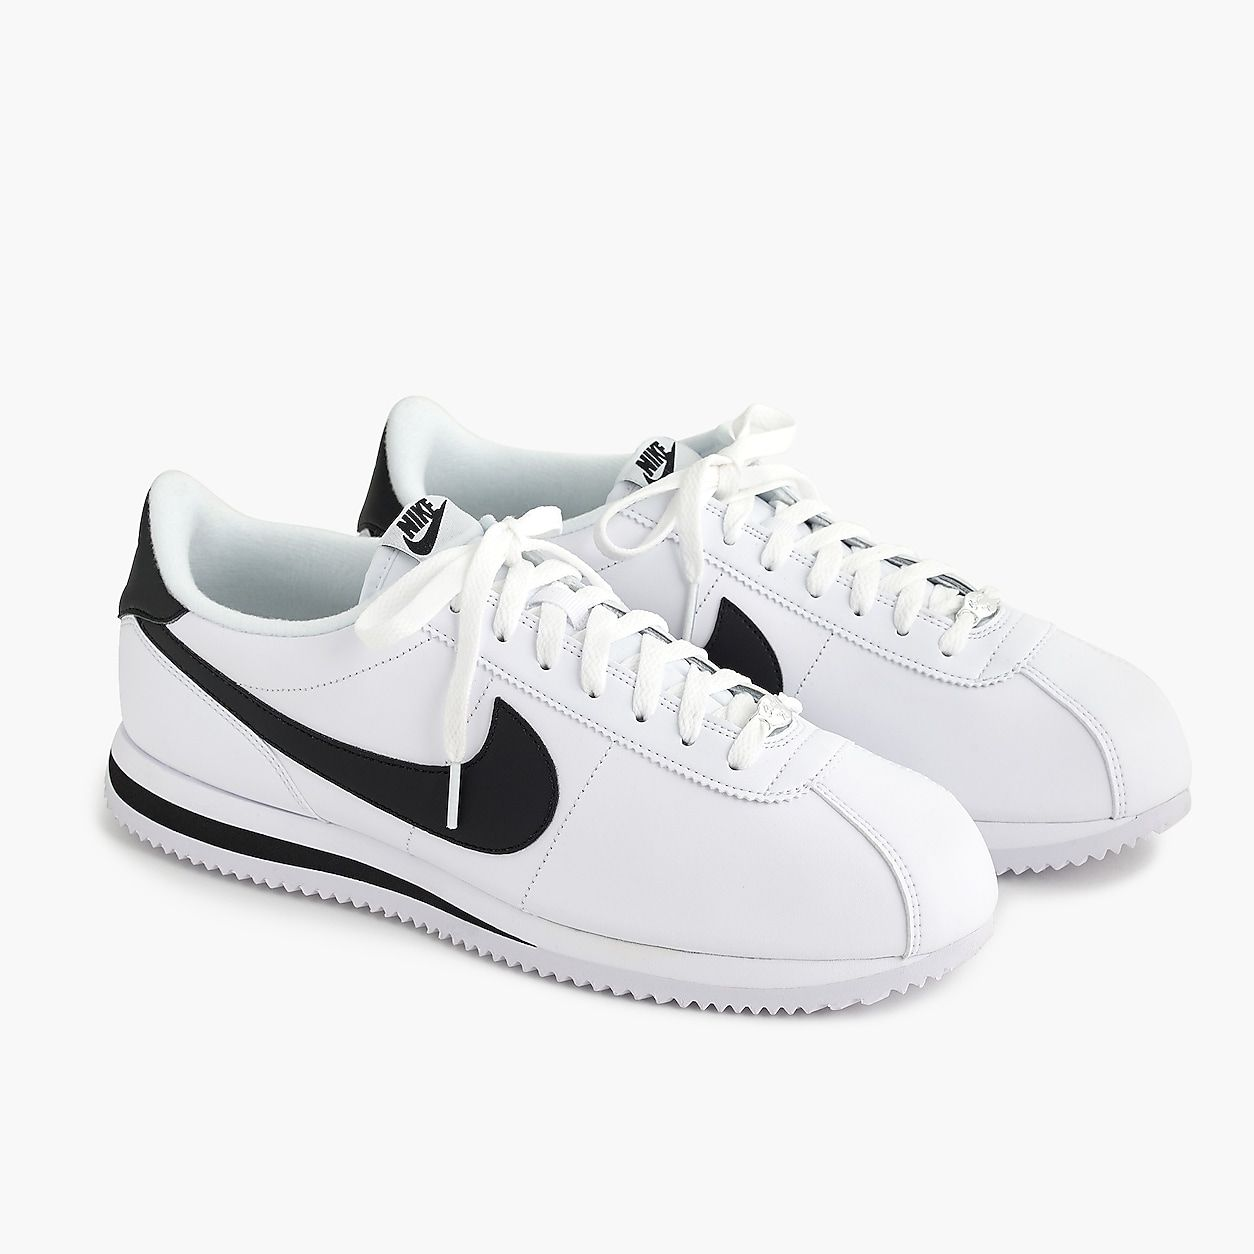 Nike Cortez Sneakers In Leather Products Sneakers Nike Cortez Nike